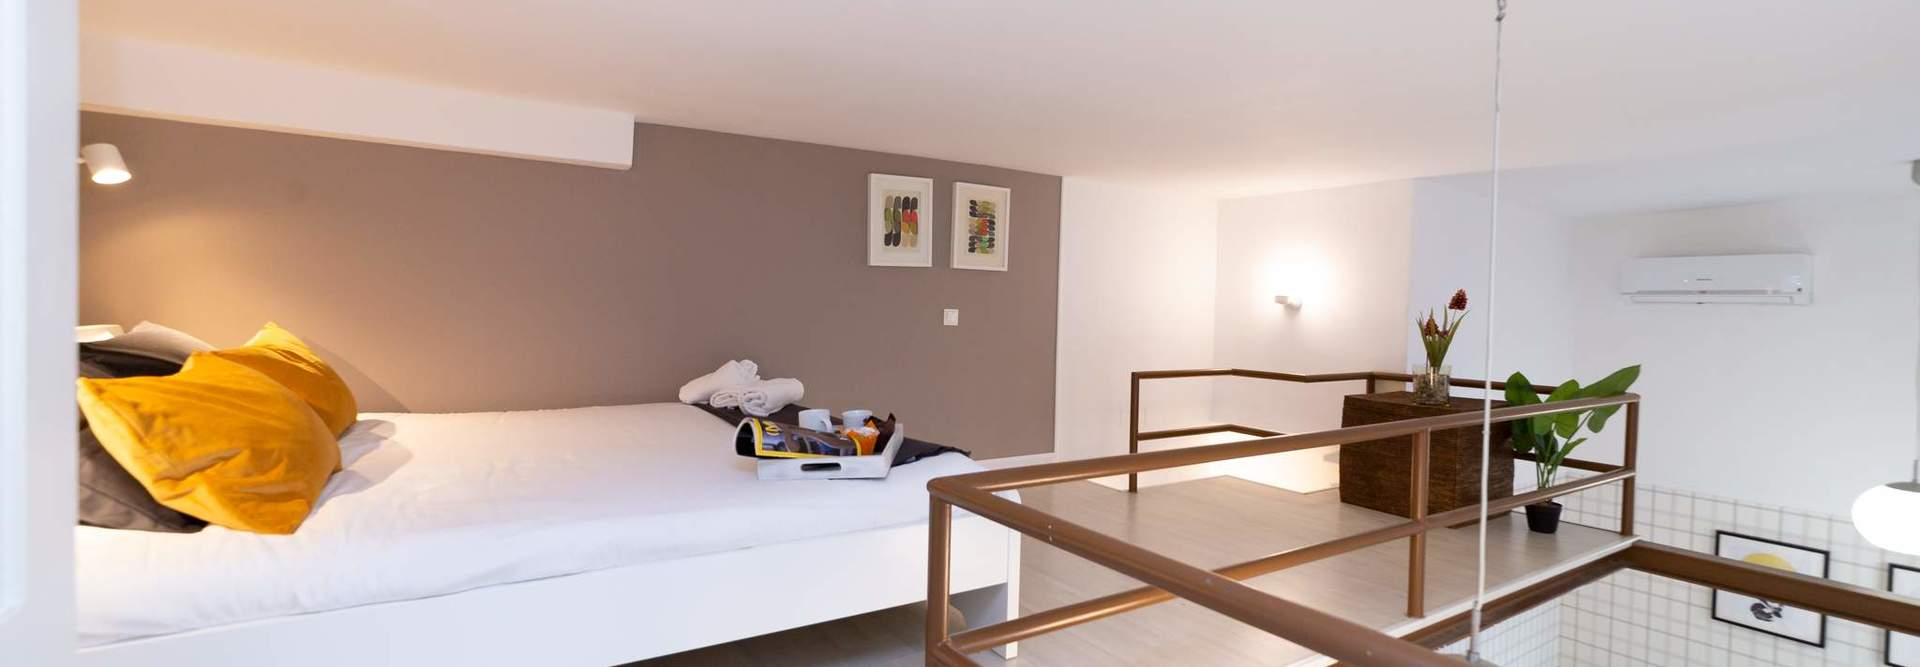 Home alquiler apartamentos madrid mad4rent 11